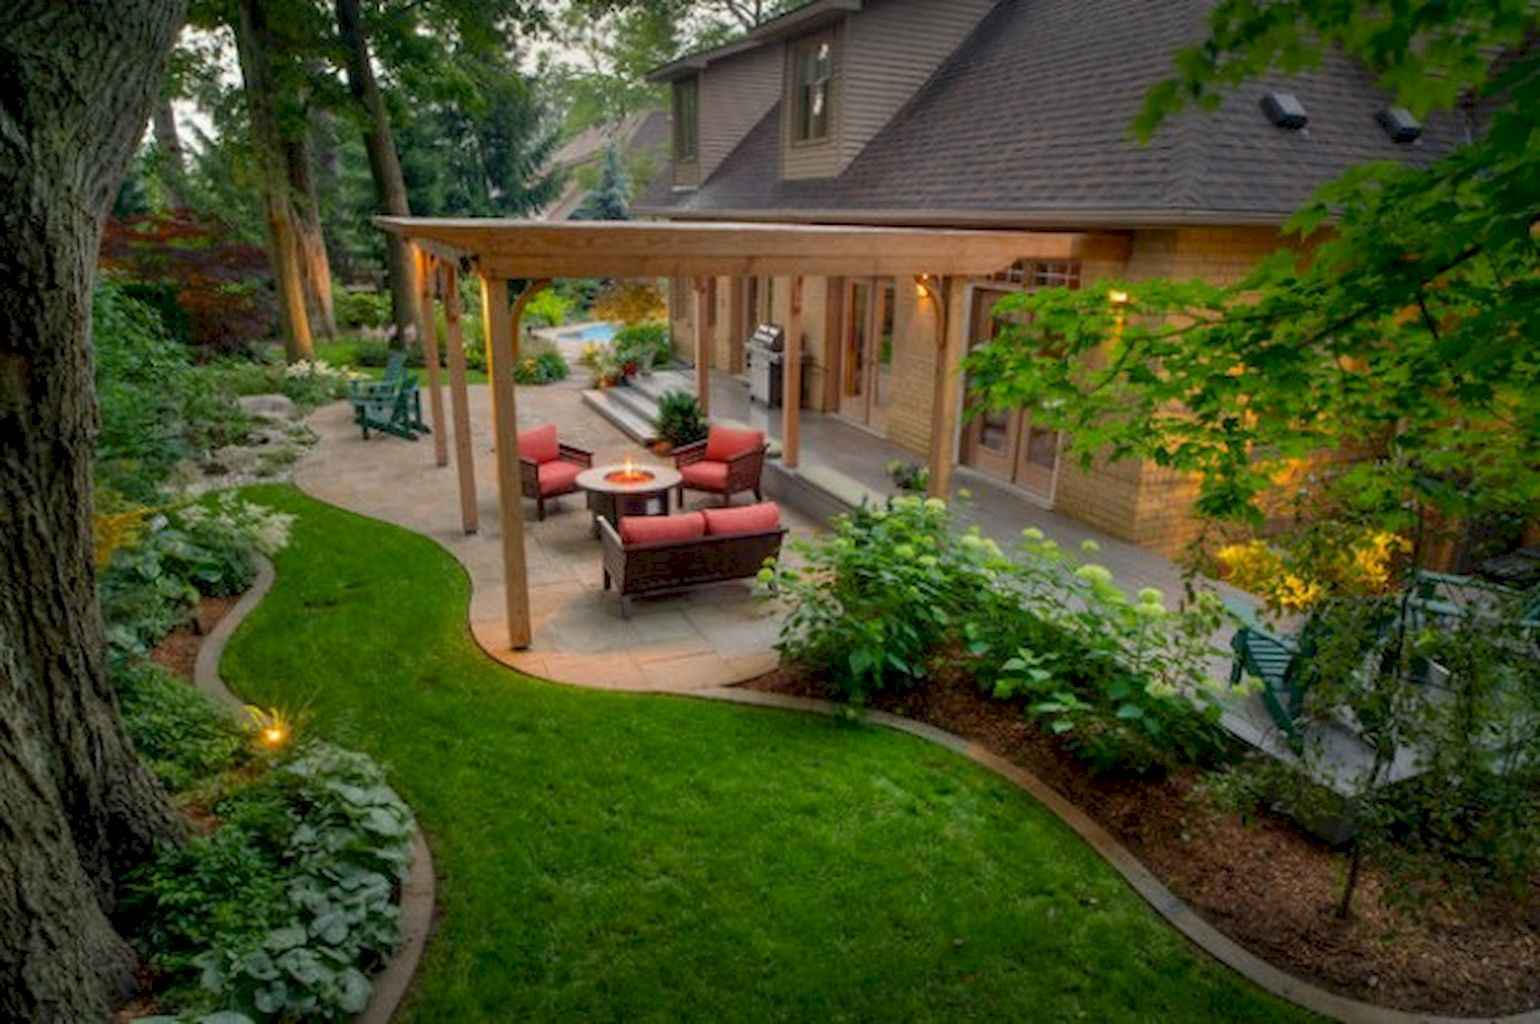 Small backyard landscaping ideas on a budget (65)